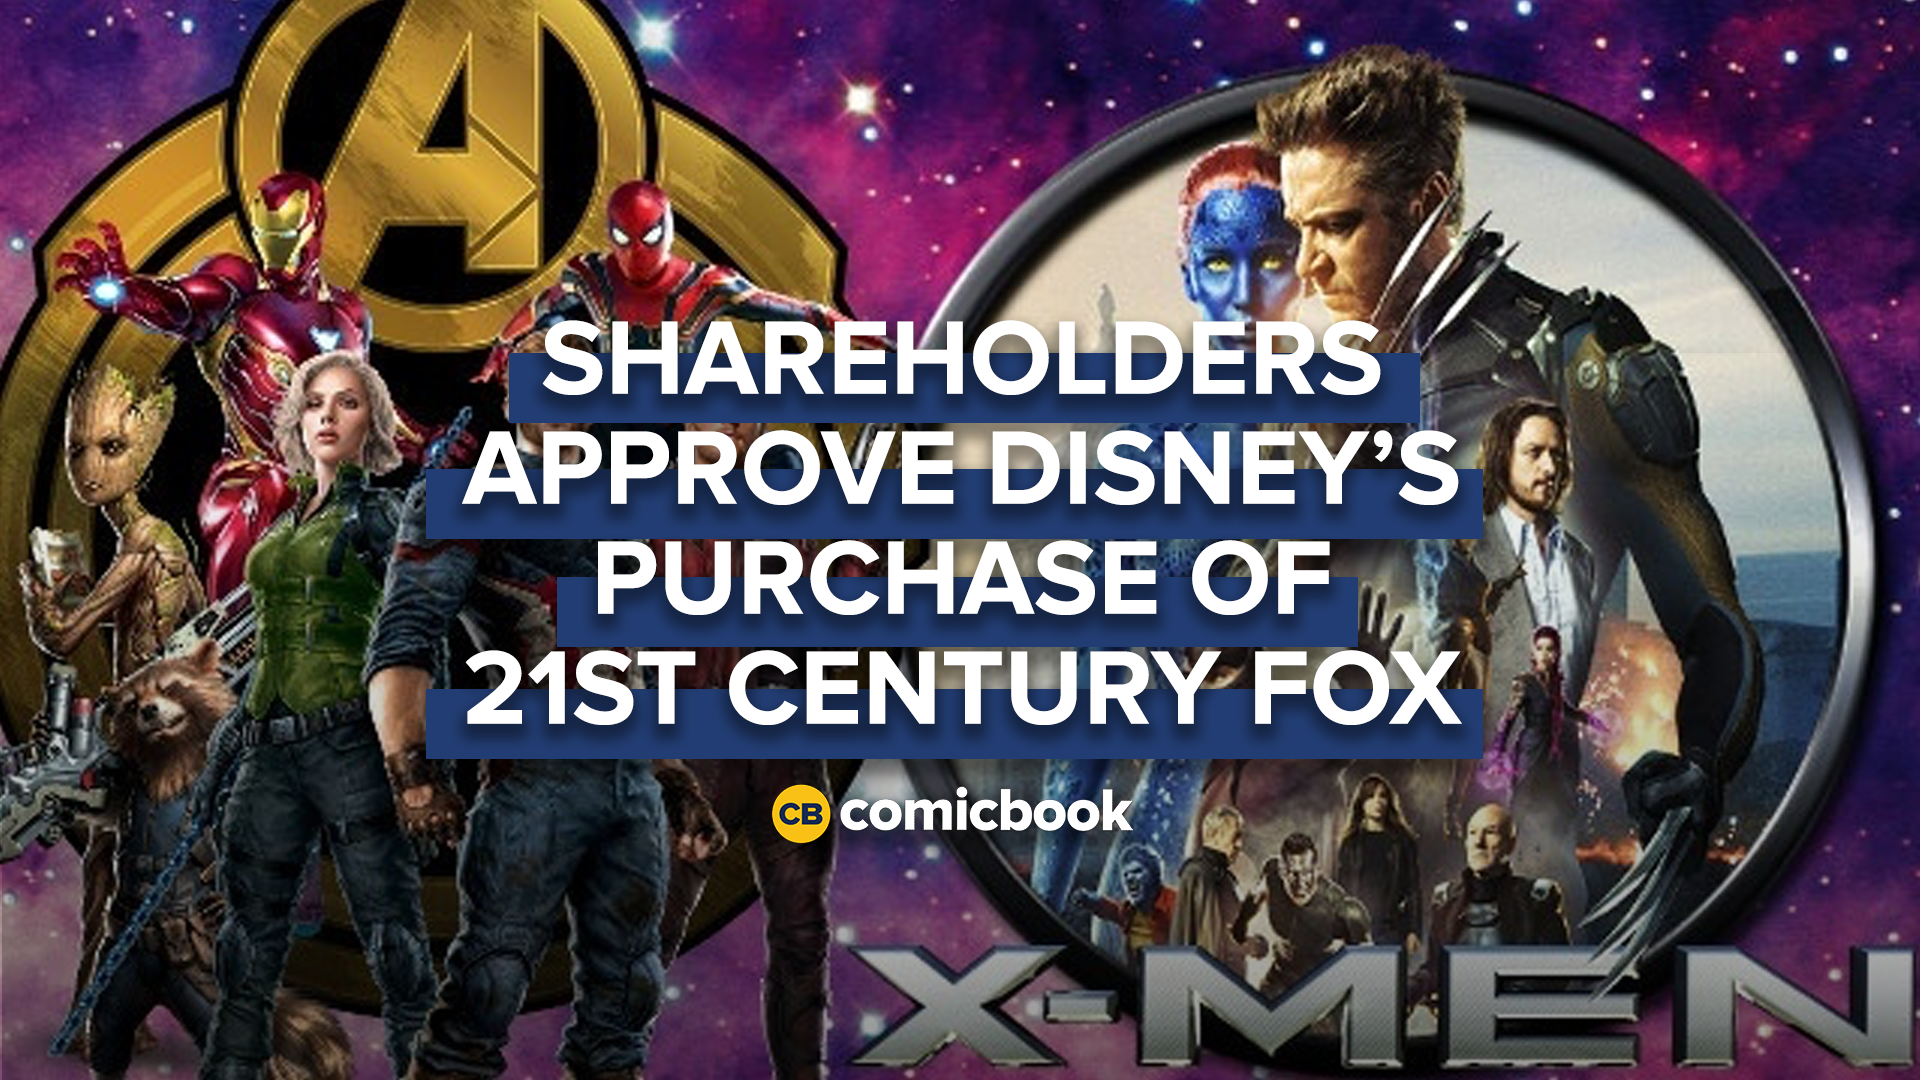 Shareholders Approve Disney's Purchase of 21st Century Fox screen capture